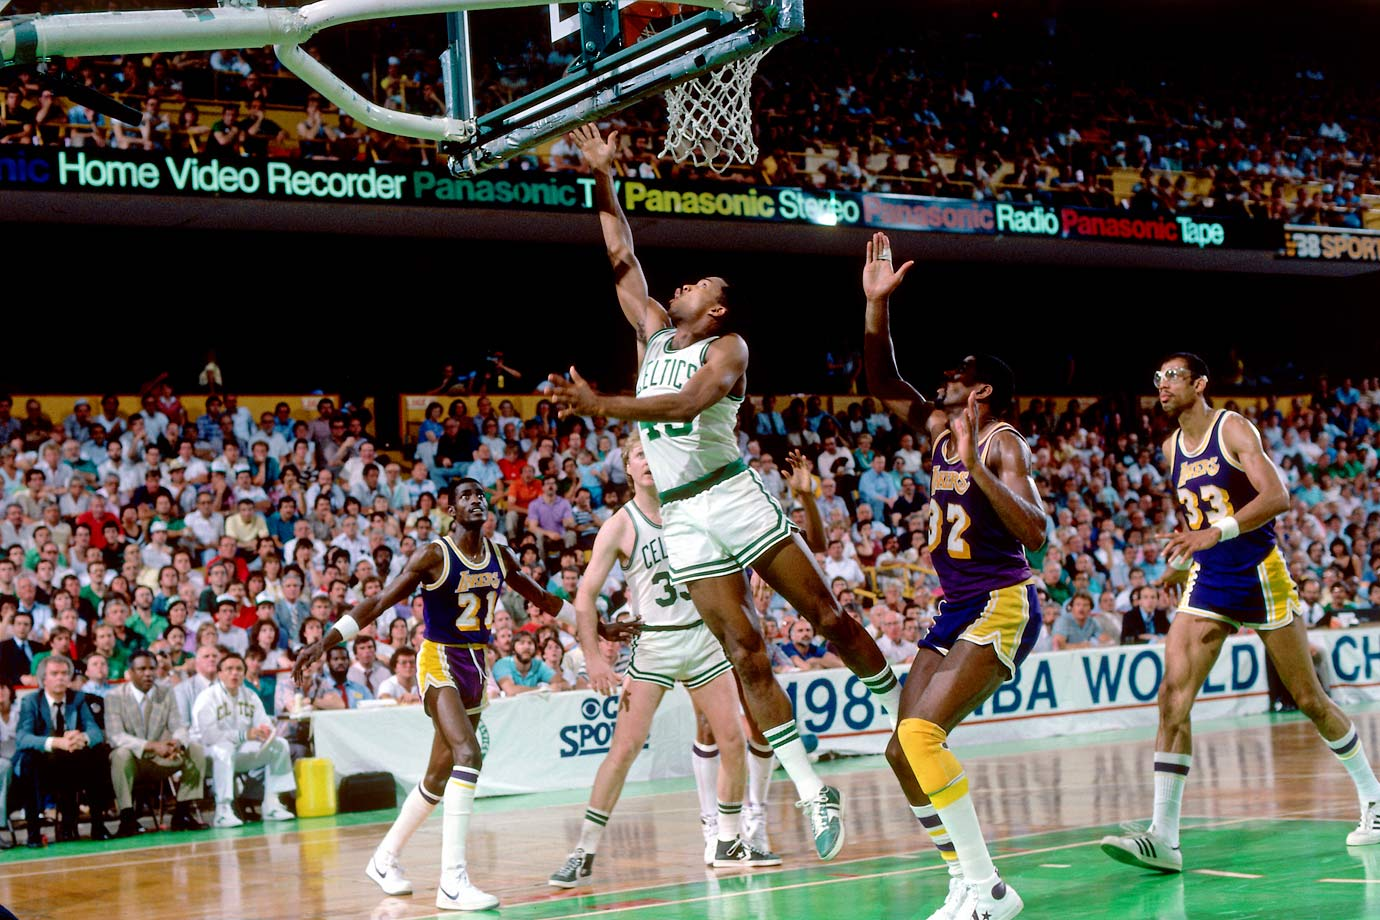 The Lakers had the Celtics on the ropes, leading the series 1-0 and nursing a 115-113 advantage with 15 seconds left in Game 2. But Gerald Henderson picked off James Worthy's lazy backcourt pass and turned it into a game-tying layup. Boston prevailed in overtime to climb back into the series.